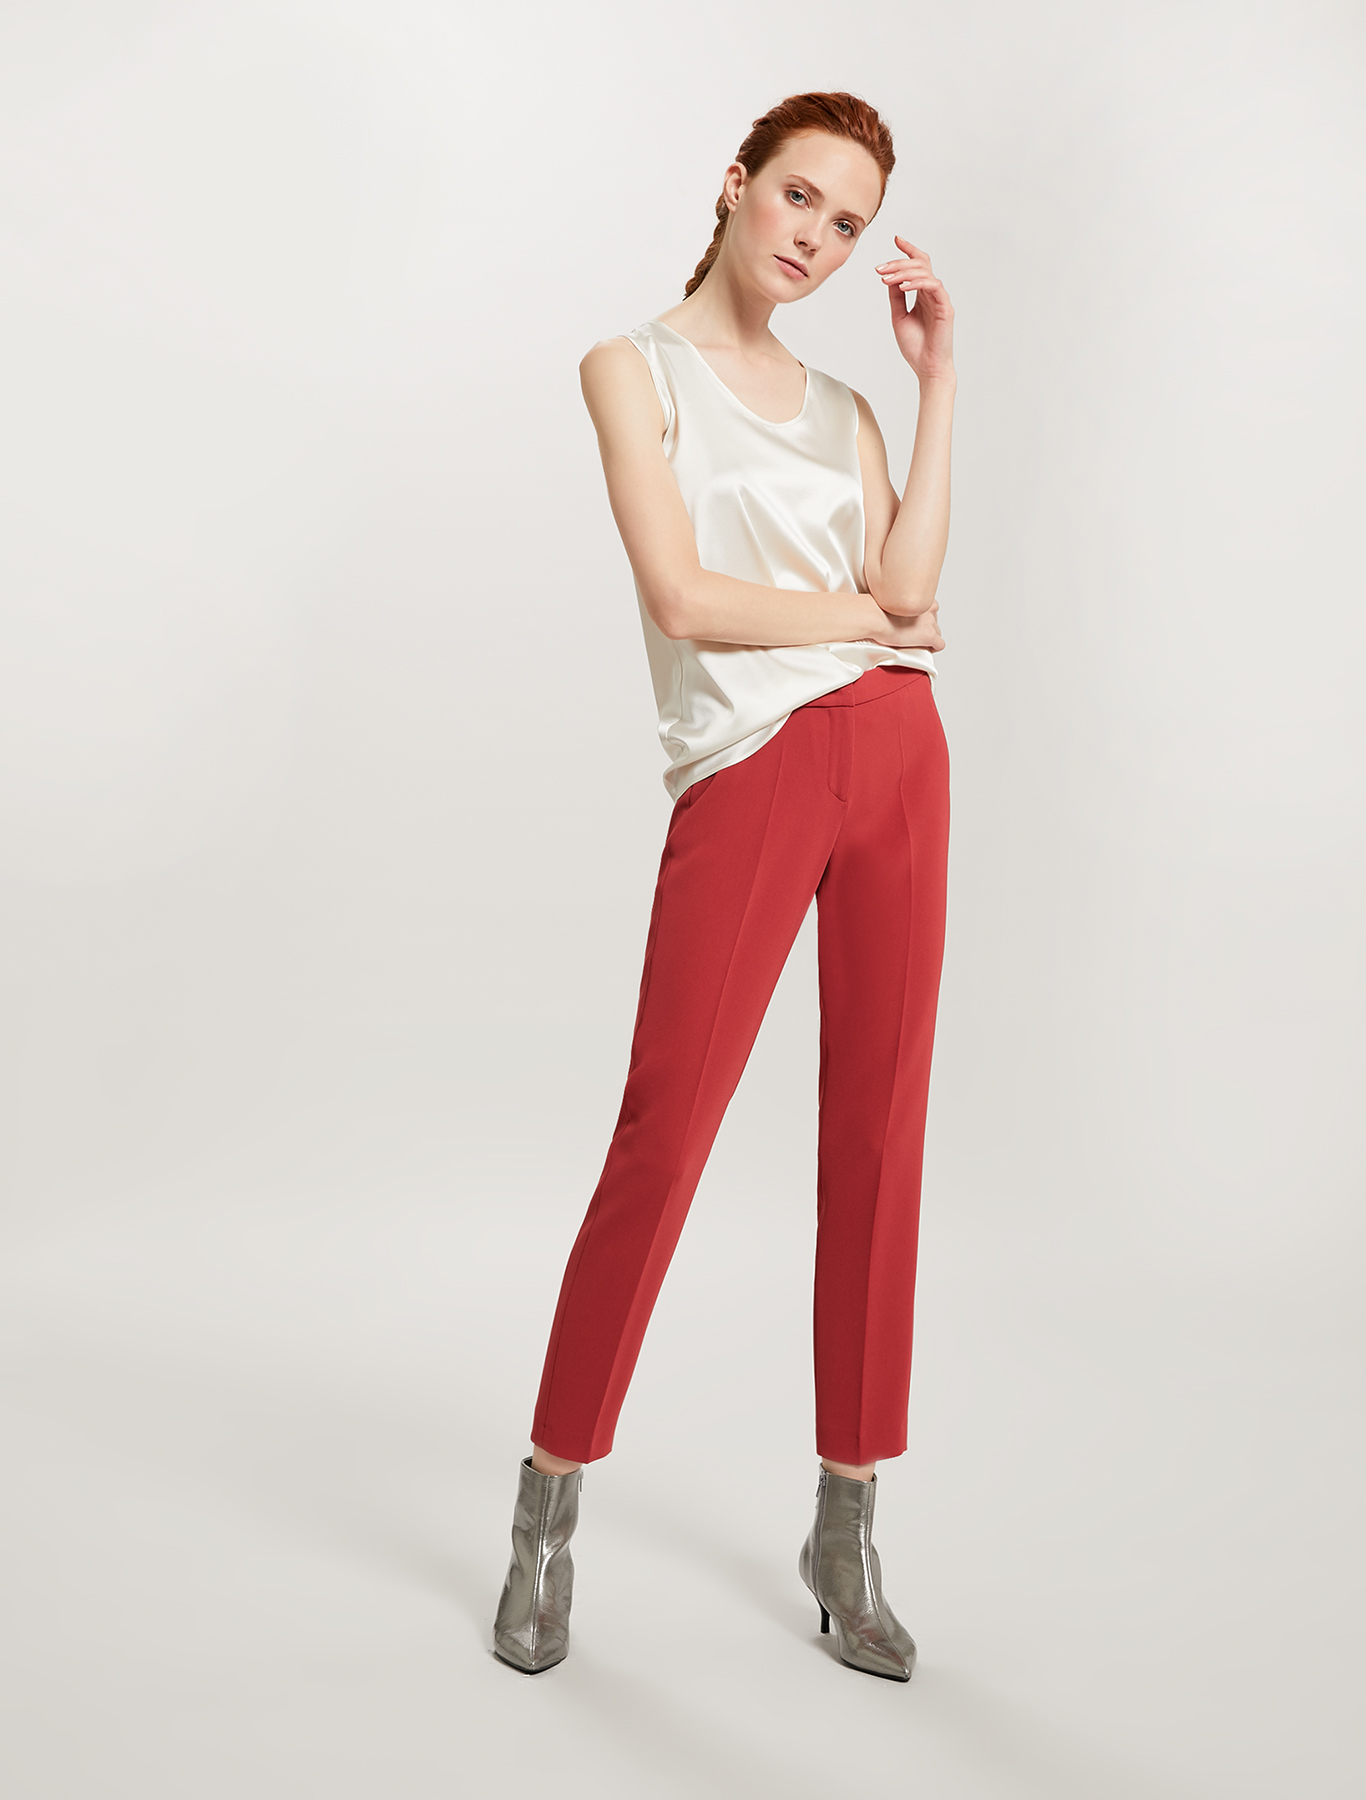 Slim fit fluid trousers - red - pennyblack